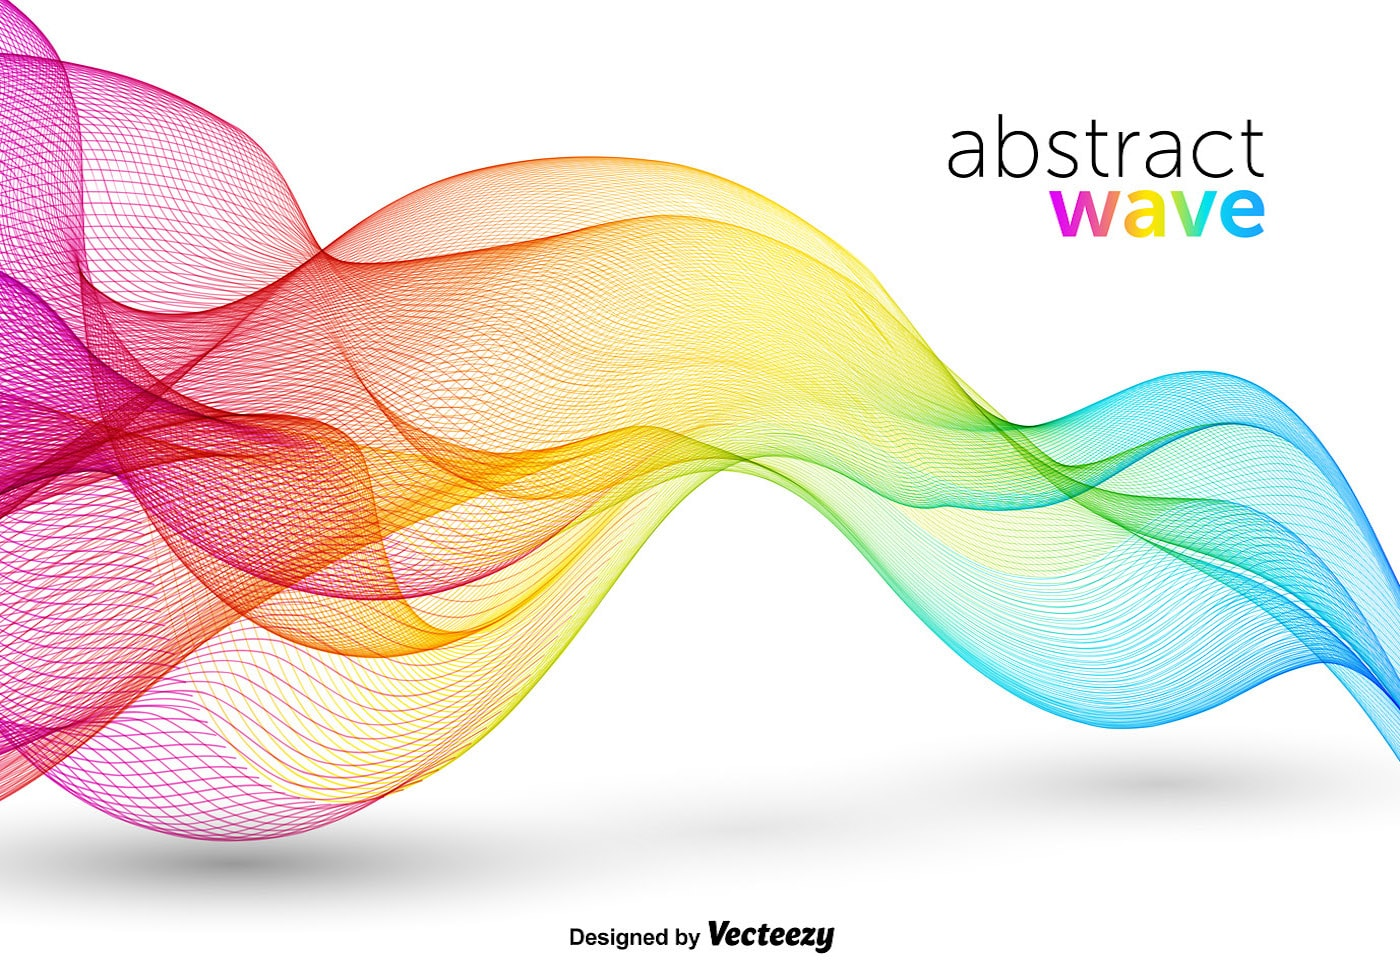 Abstract colorful wave free vector download (33,700 Free ...